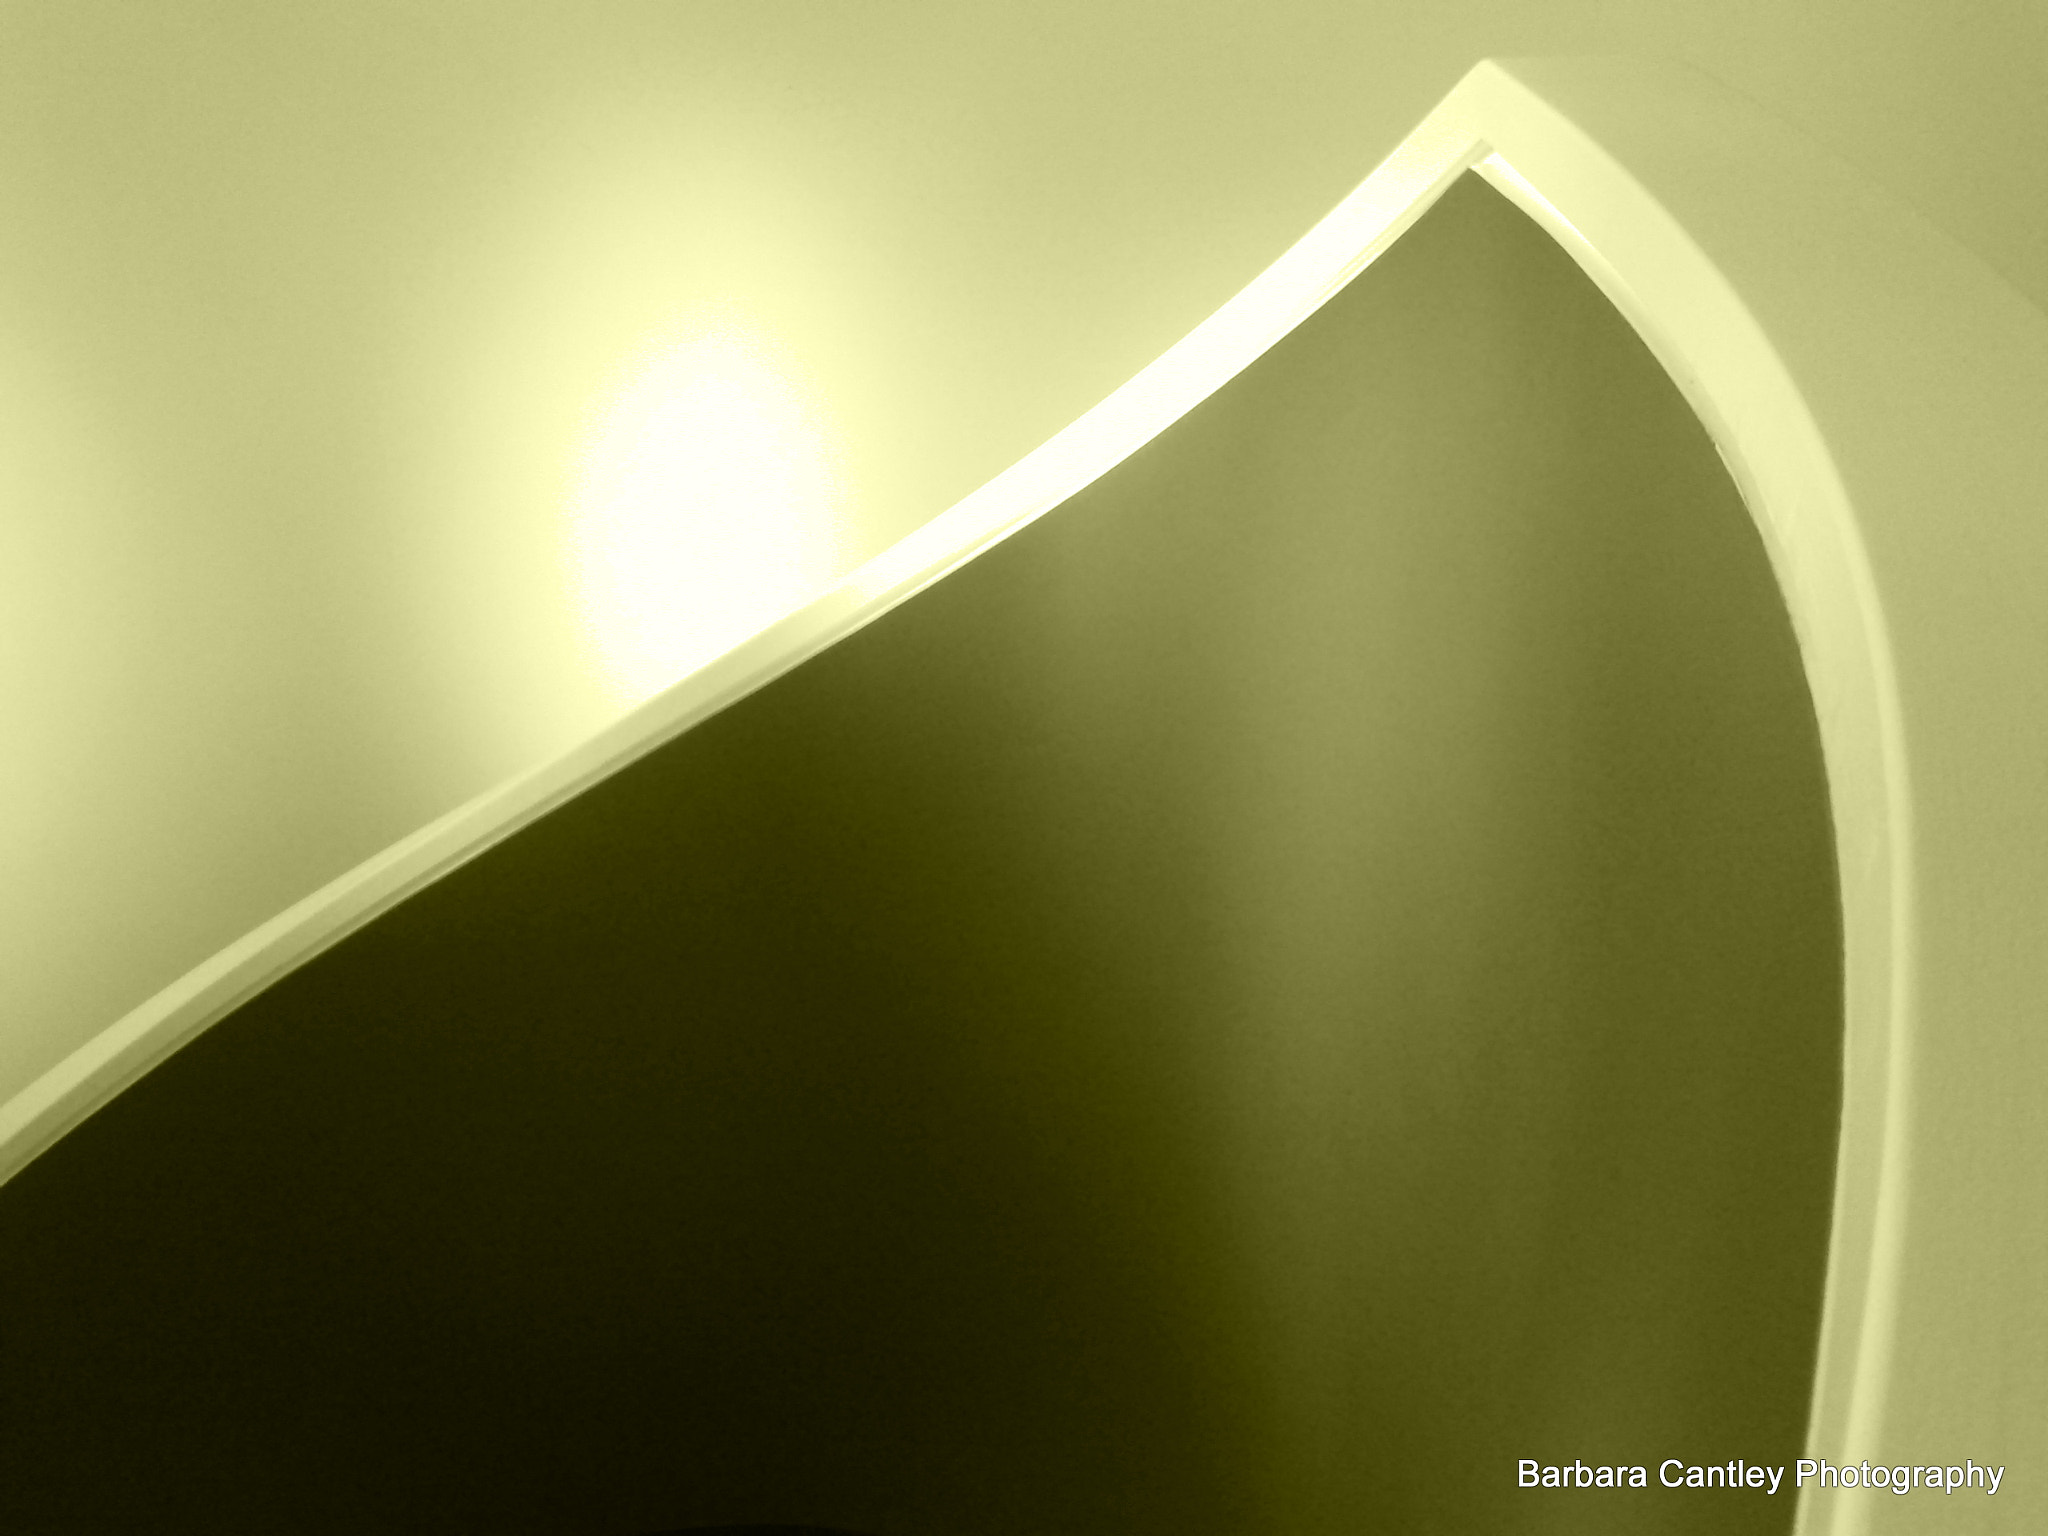 Photograph Curves by Barbara Cantley on 500px